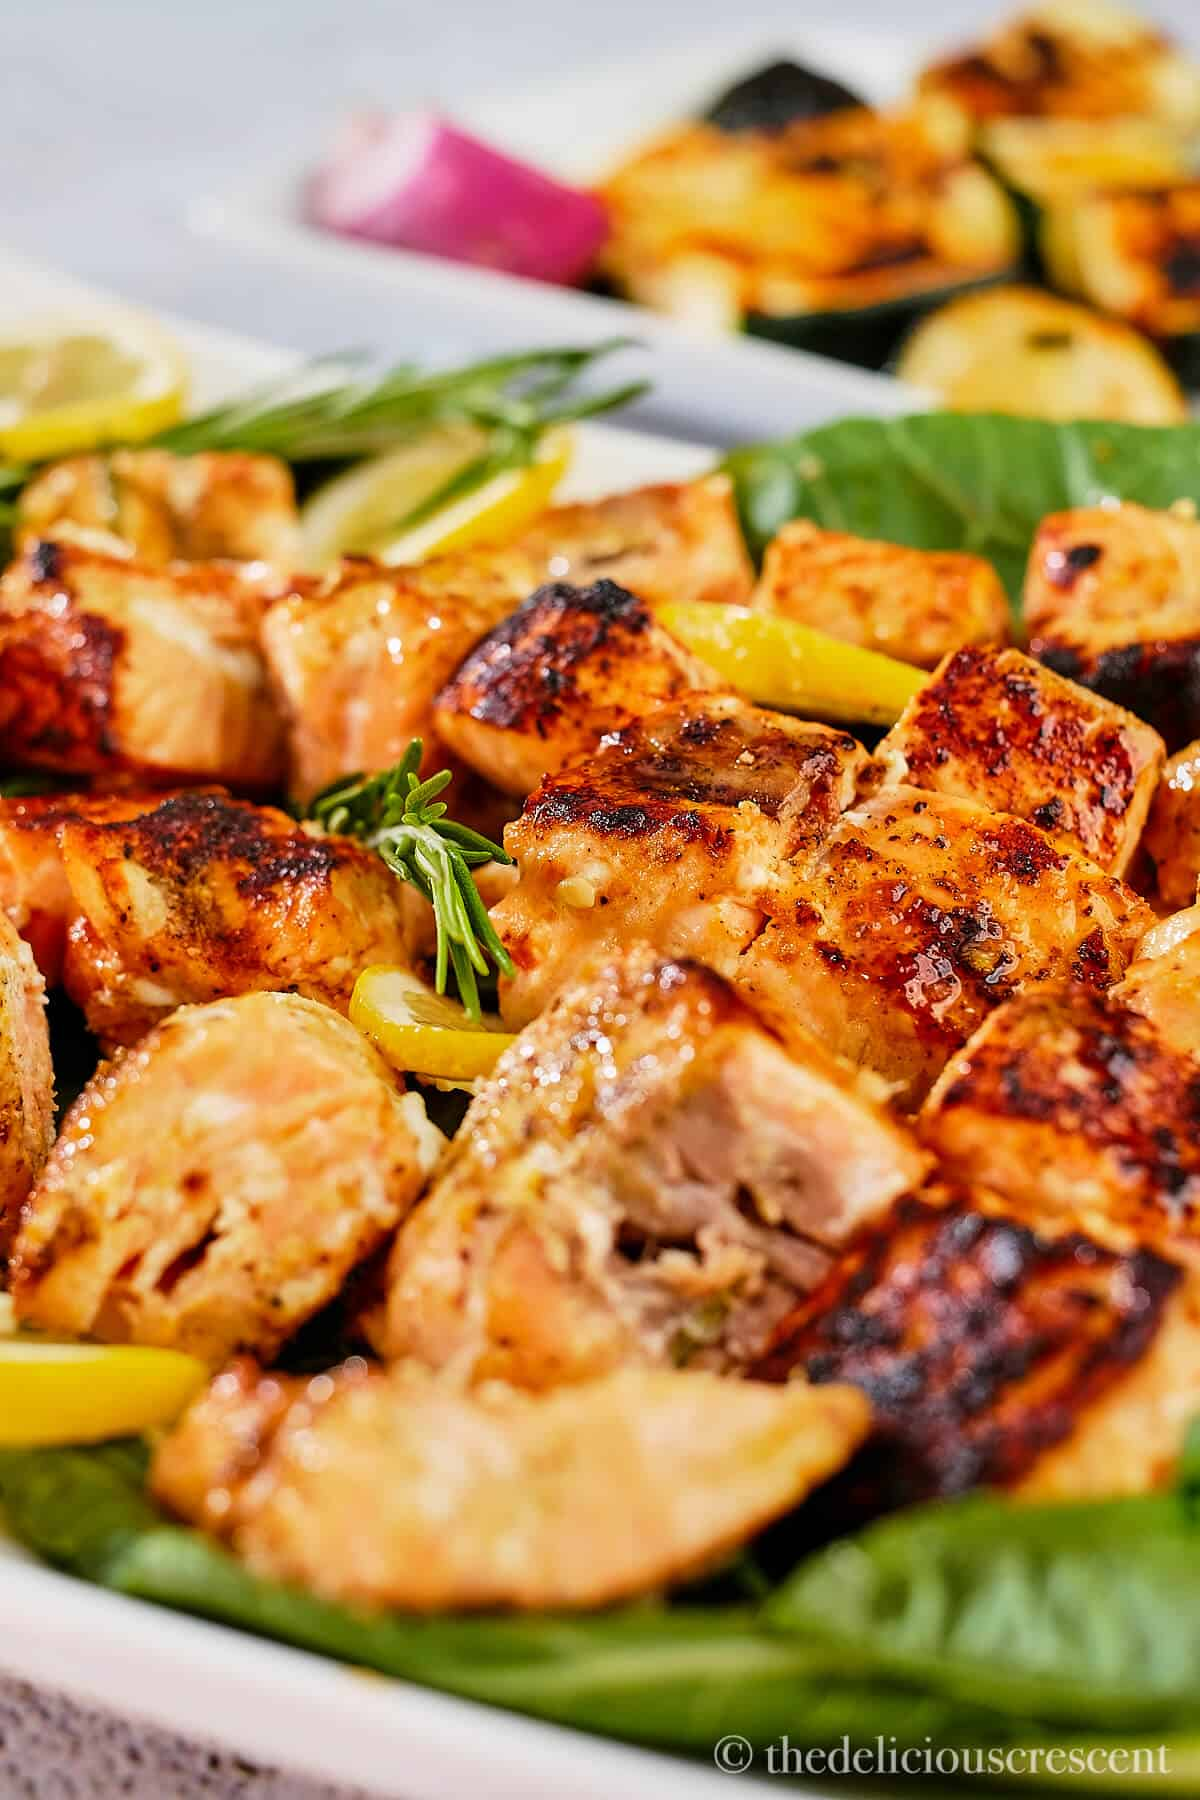 Grilled salmon kabobs arranged on a platter.